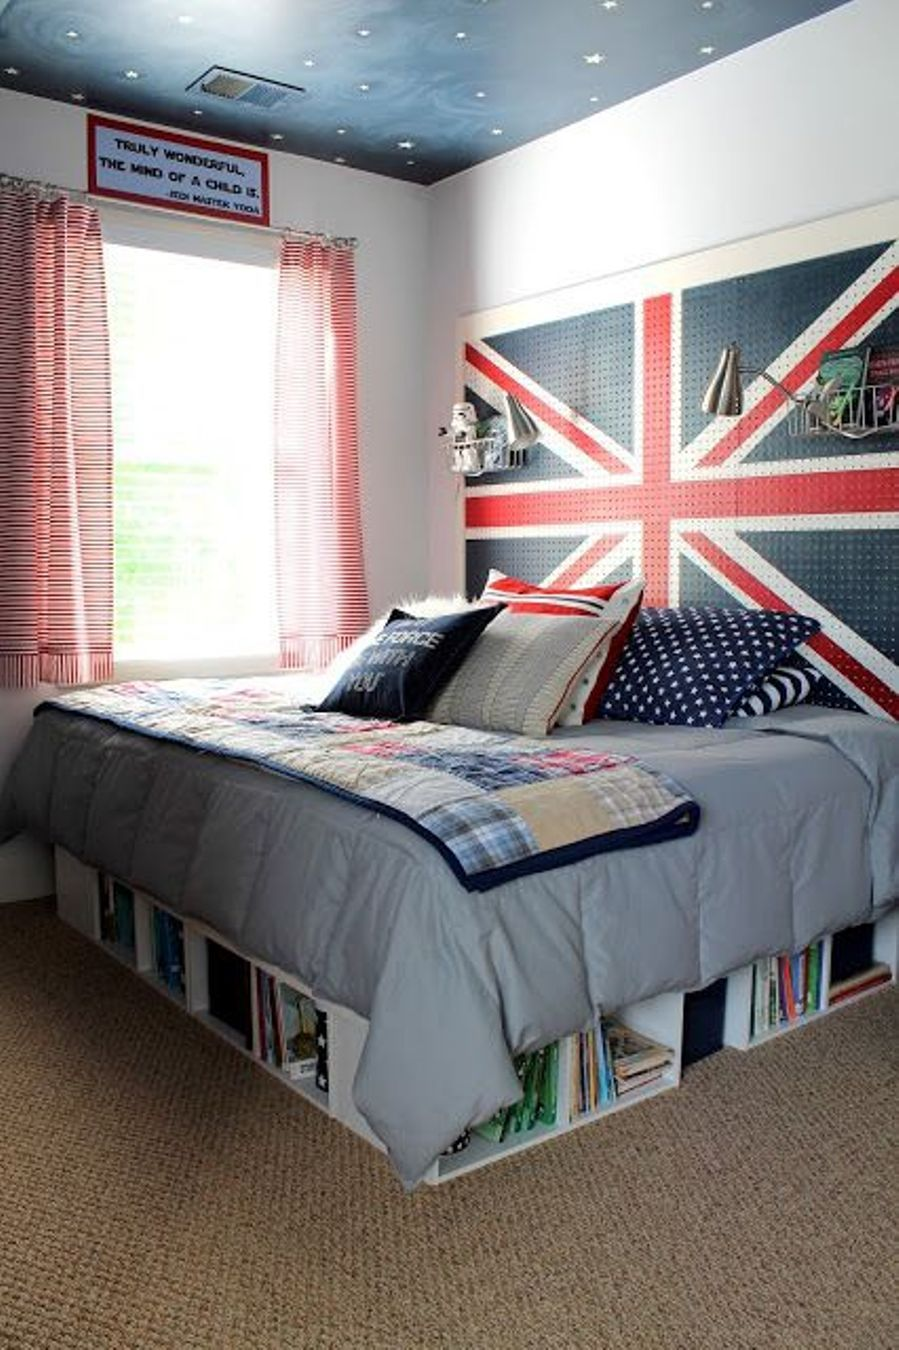 Boy Bedroom Storage: Fabulous Small Teenage Boy Bedroom Design With Cool